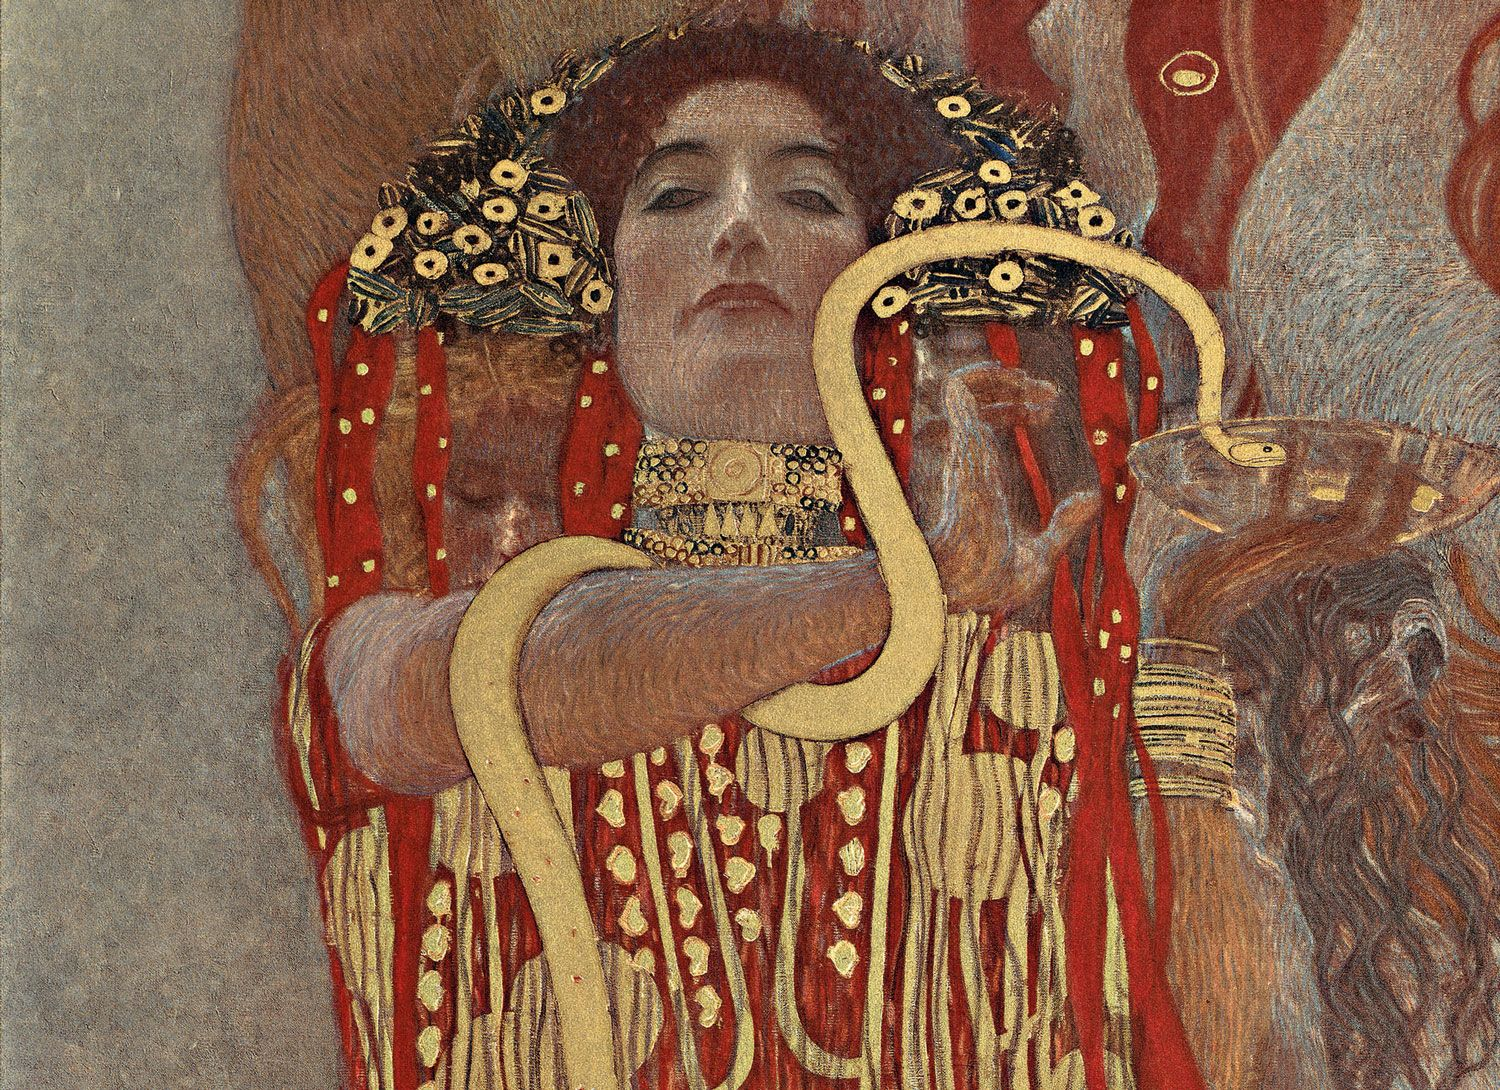 gustav klimt was no stranger to controversy but the